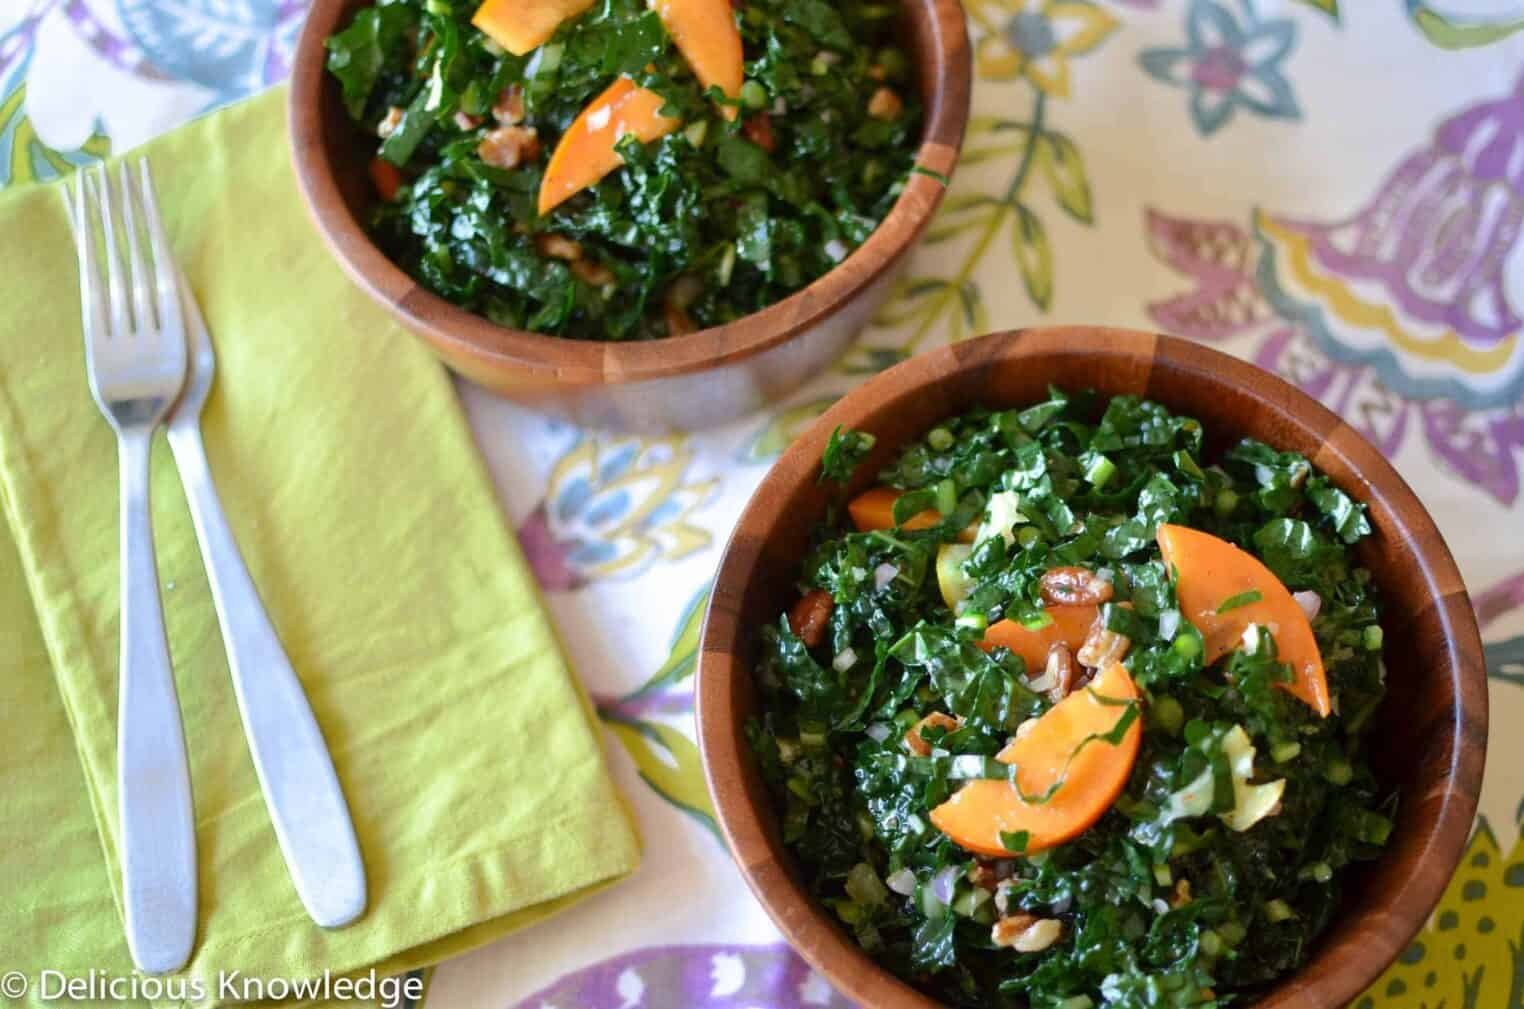 winter kale salad with preserved lemons and persimmons